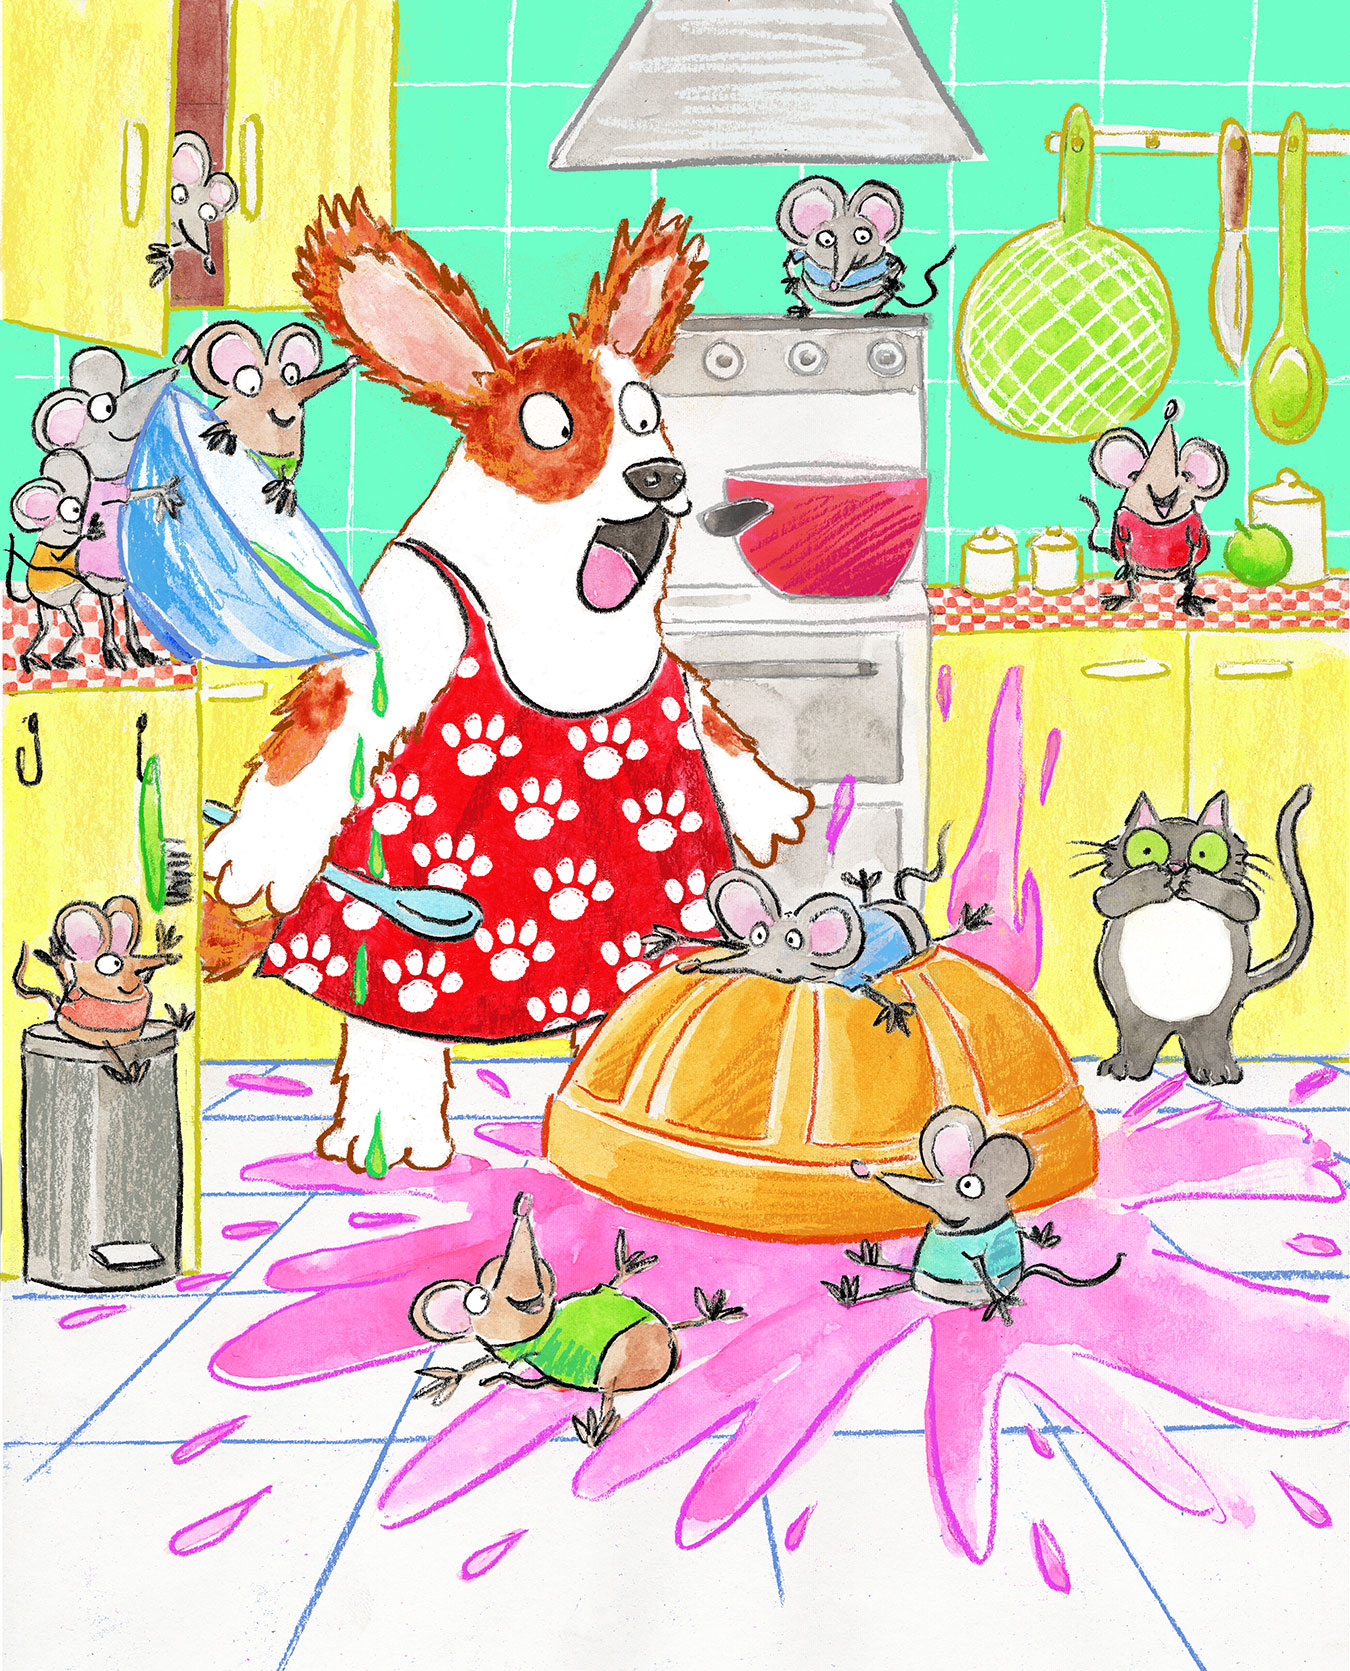 A dog baking in the kitchen stares at bowl of pink cake mix splatted all over the floor by a lot of mischievous mice. A useless cat looks on.